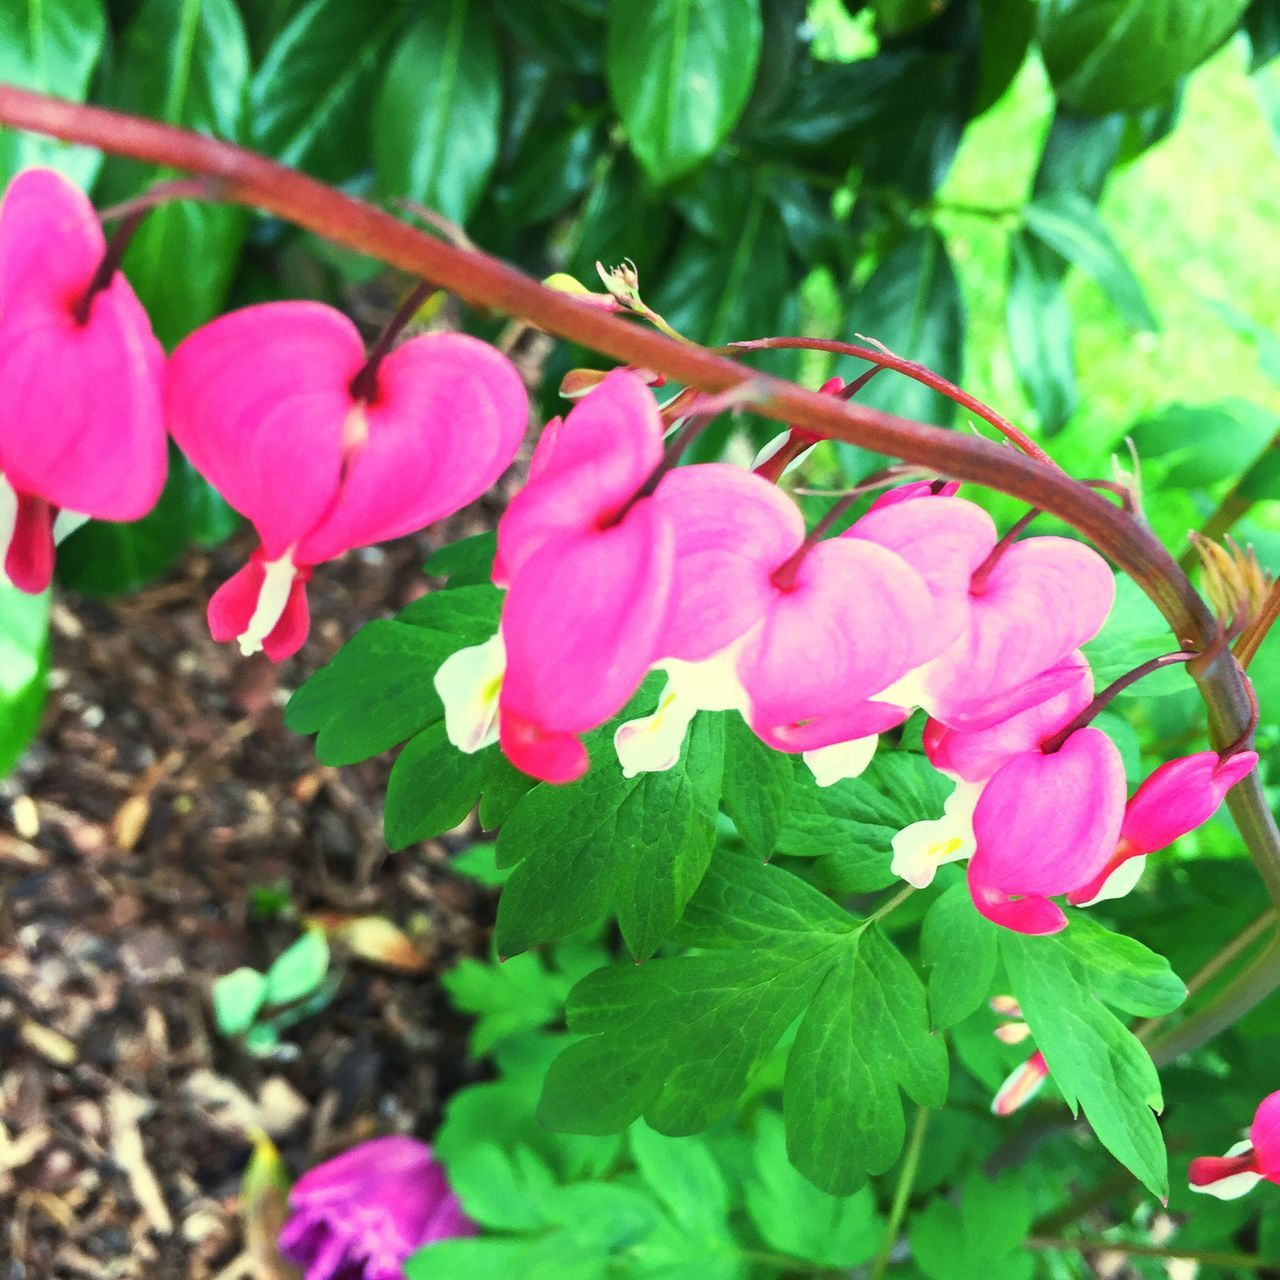 growth, pink color, nature, beauty in nature, flower, petal, leaf, fragility, plant, outdoors, freshness, no people, blooming, day, green color, close-up, flower head, tree, periwinkle